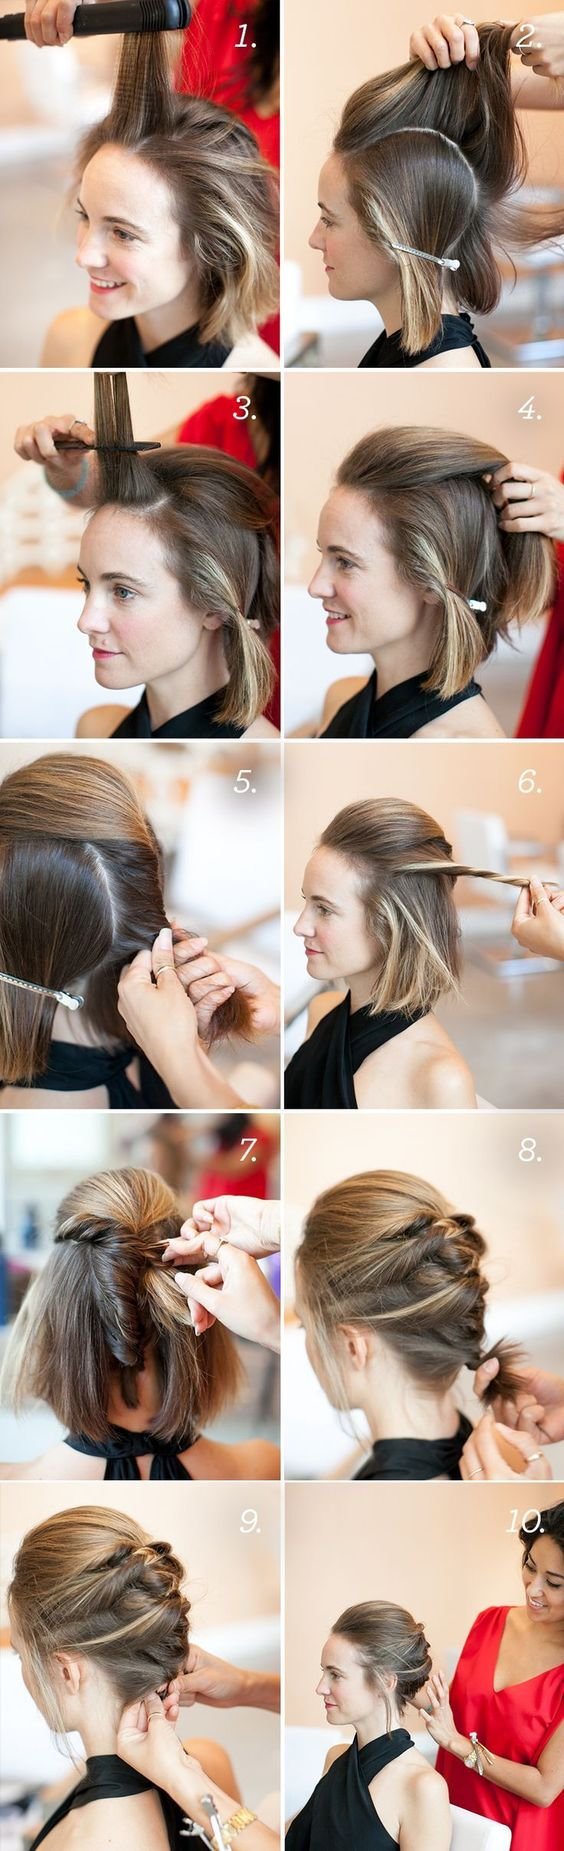 The Easy Updos For Short Hair That Will Amaze Men! cute_easy_updos_short_hair_5-1